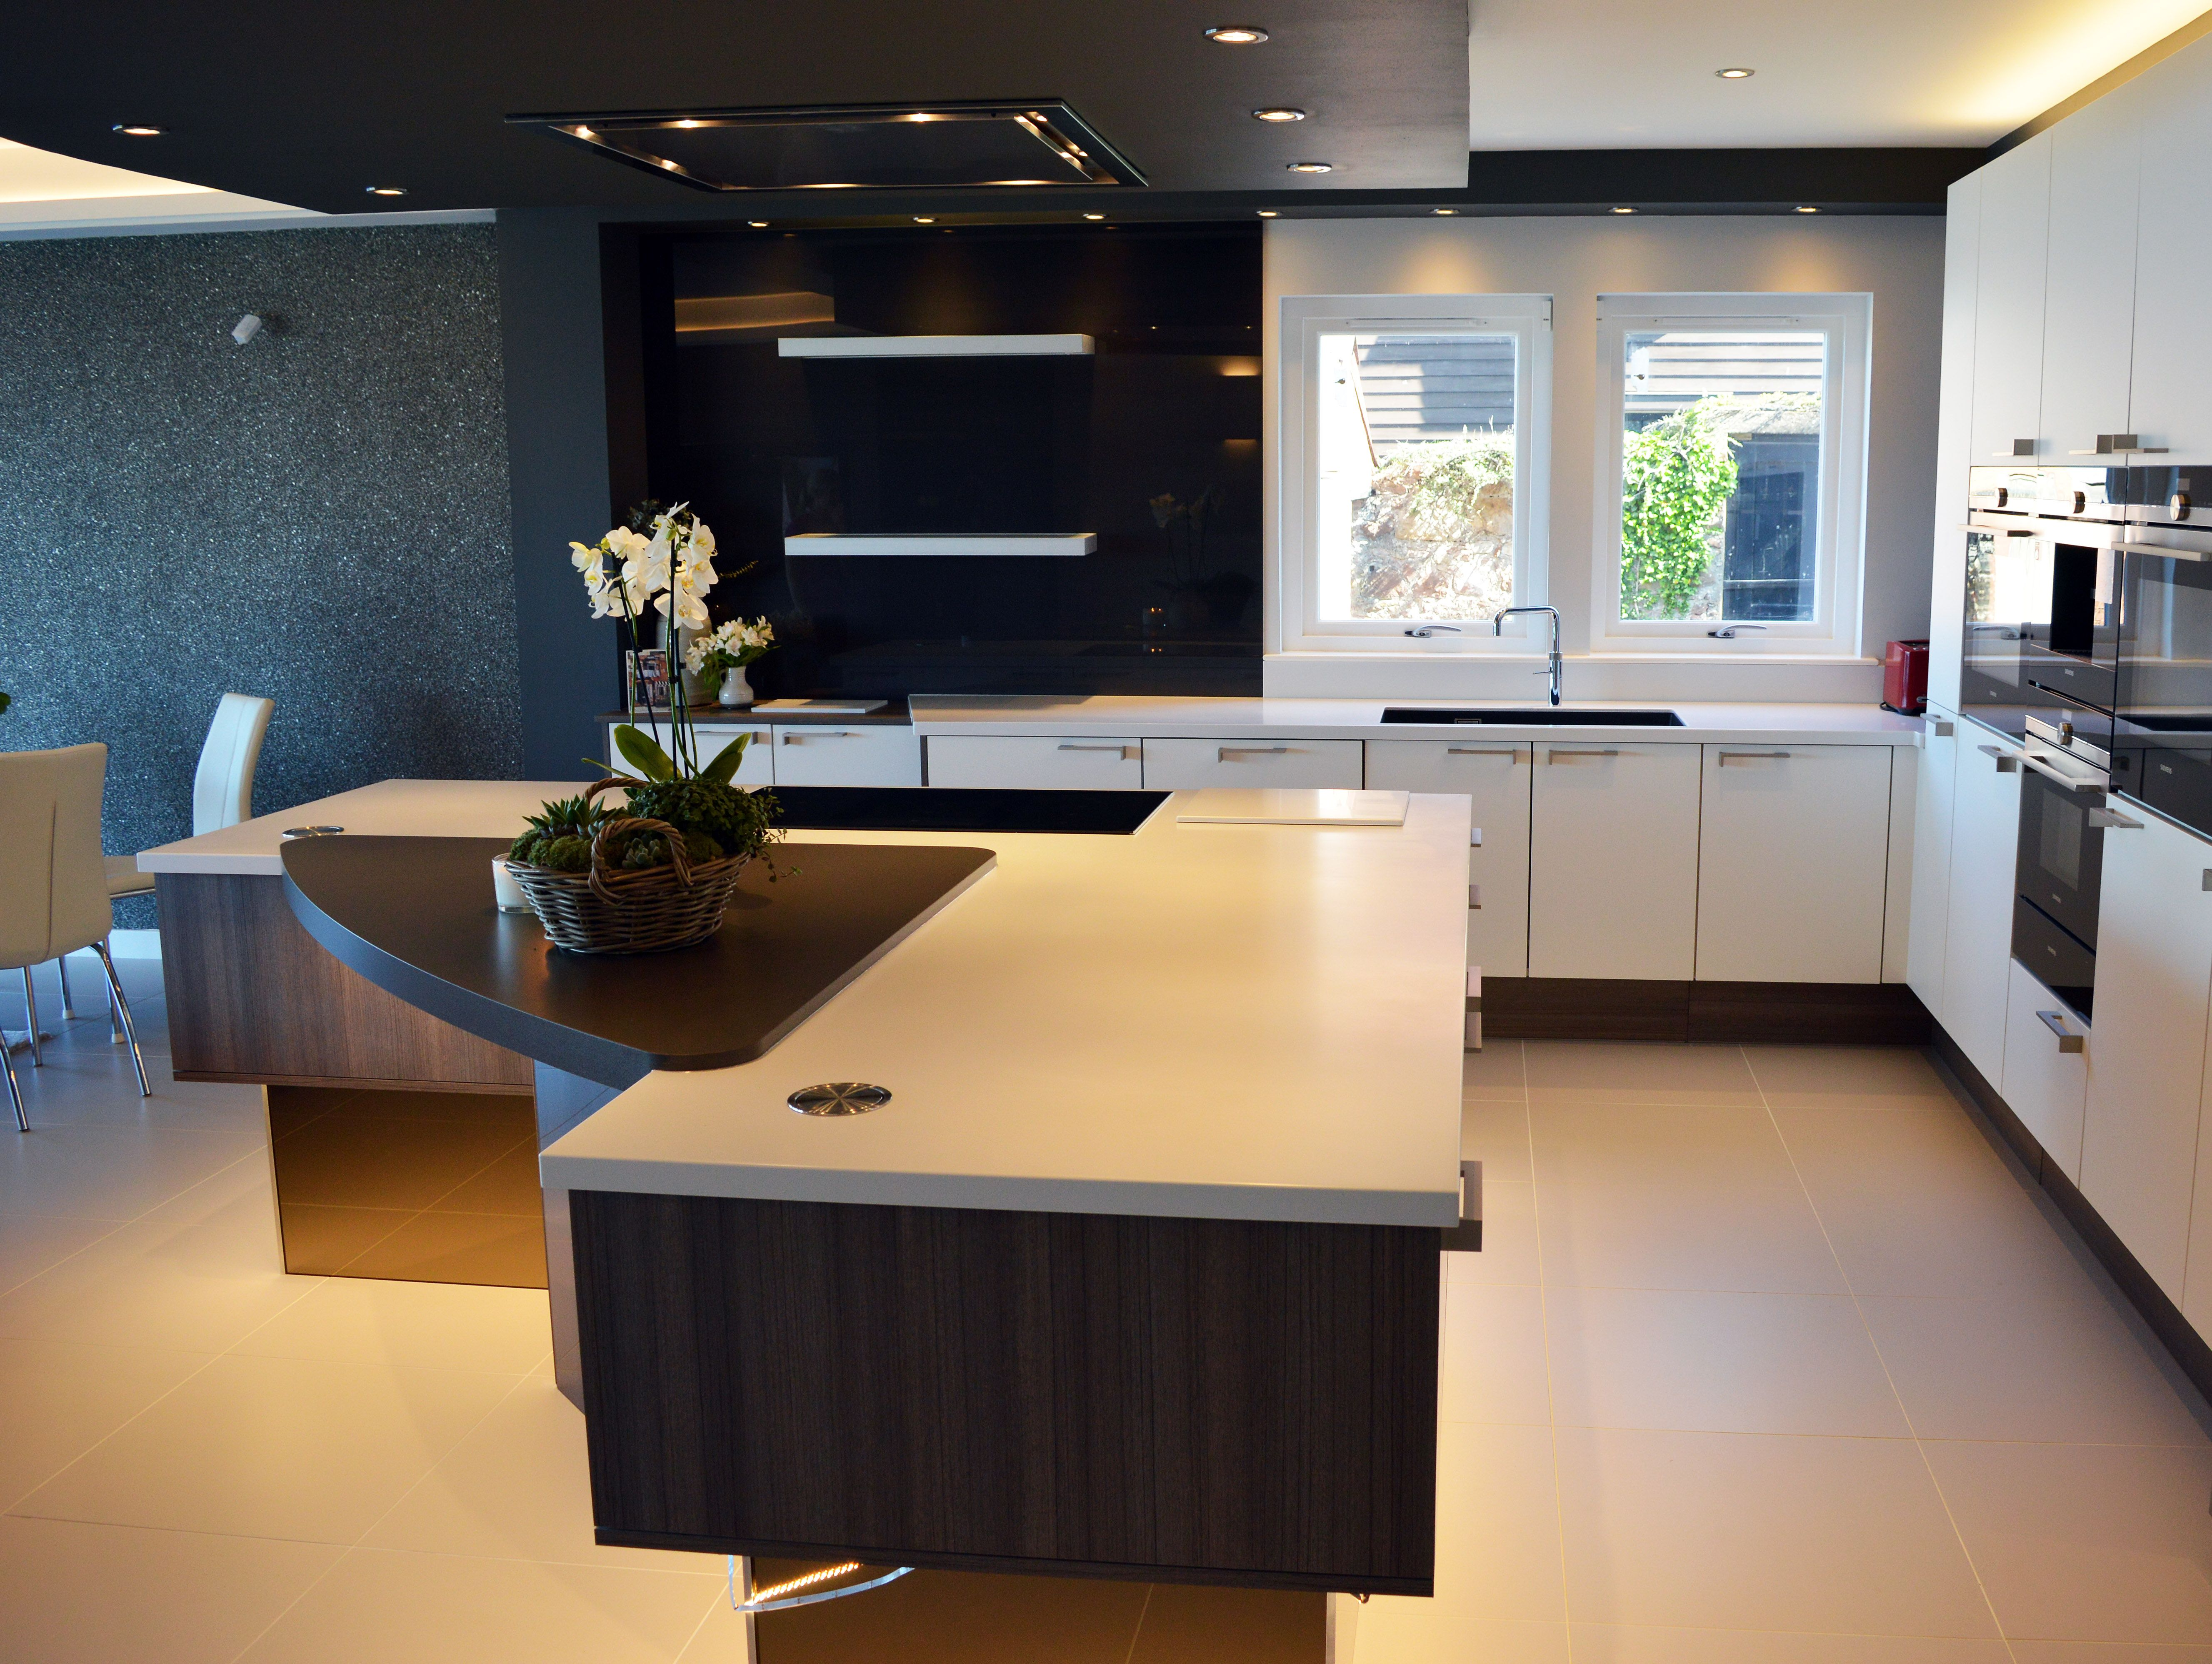 Here You Will Find The Latest News From Talented Kitchen Designers J.  Geddes In Glasgow, Scotland.